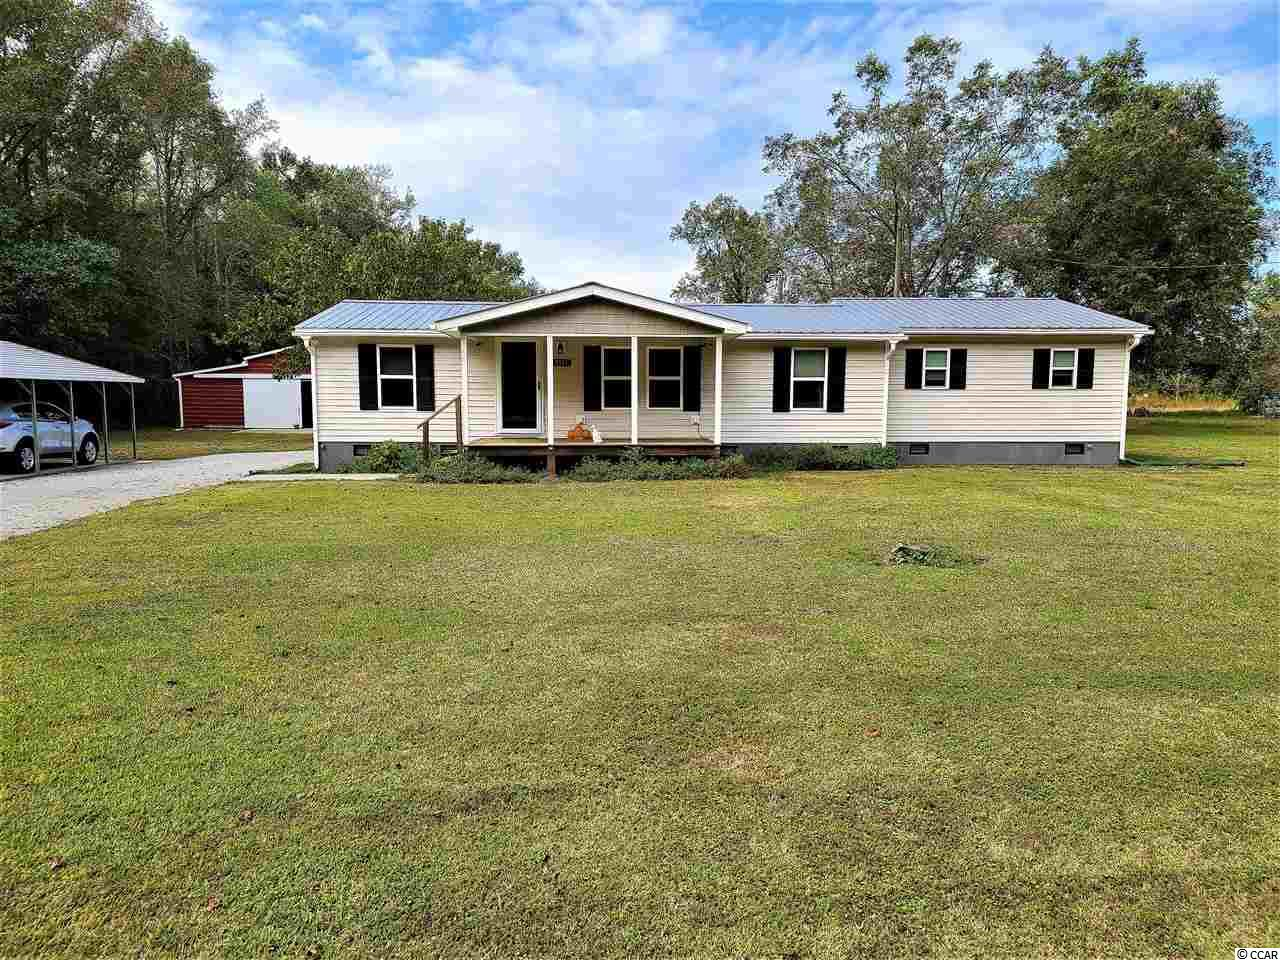 """Welcome Home! This one of a kind property is waiting on you. Property features 3 bedrooms, 3 full bathrooms, huge master bedroom, sun room/ reading room and so much more. Home is sitting on 1.5 acres and features a 48x 42 metal barn with 12x24 tool/ tack room and 6 stalls and also a safe house """"bomb shelter"""" on property. Schedule your showing today."""